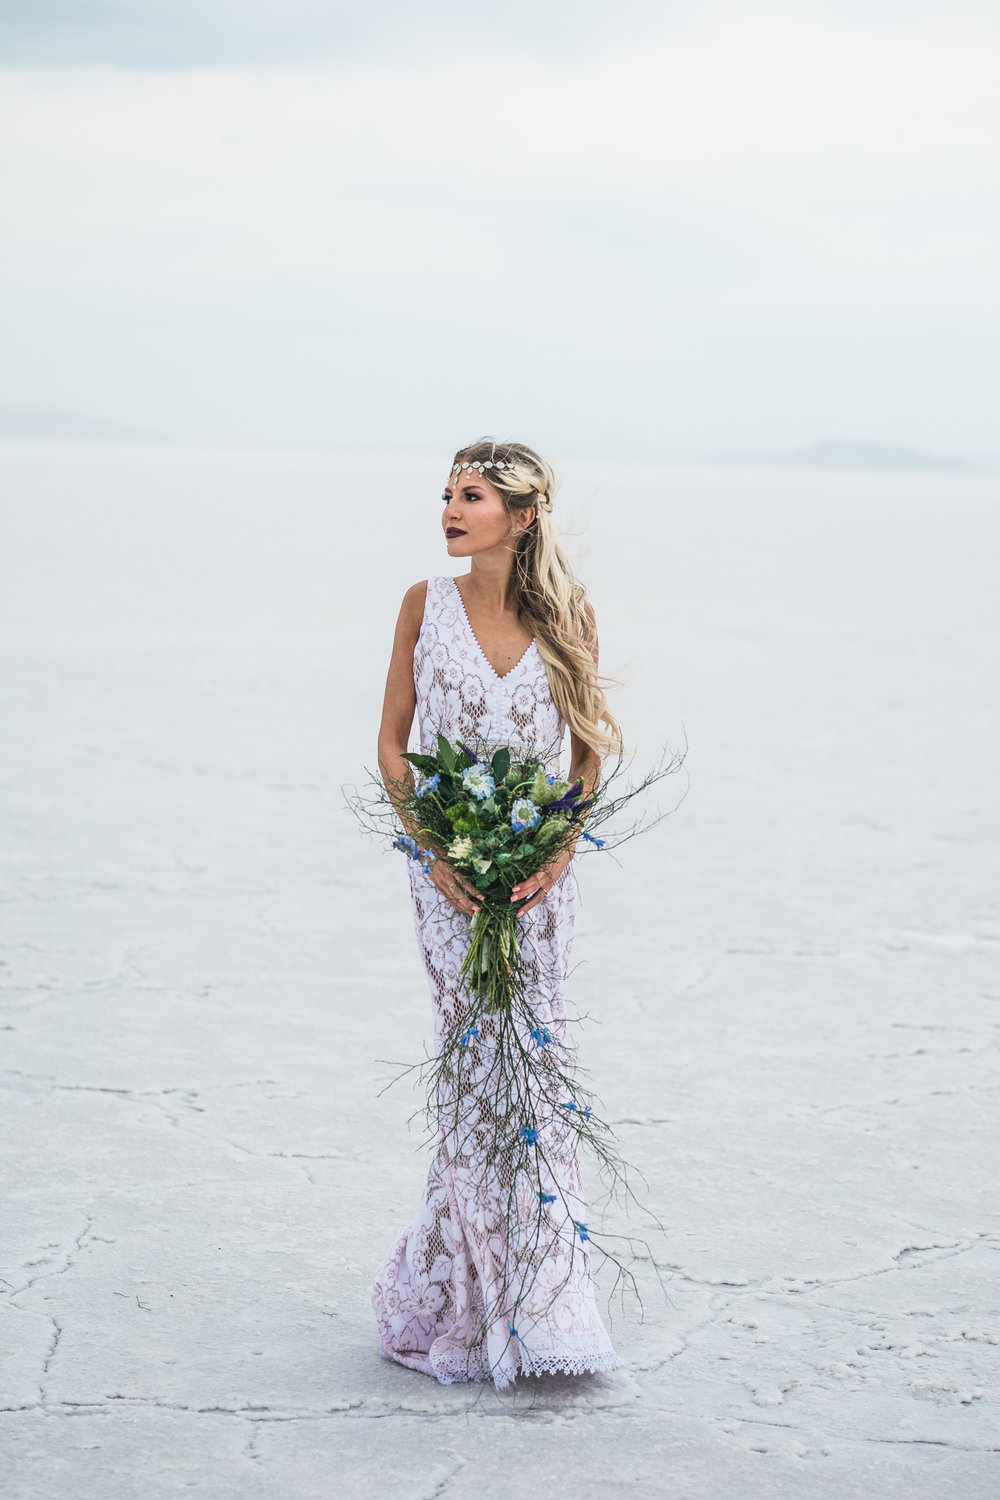 Bonneville Salt Flats Bride Portrait Danani Handmade Headpiece